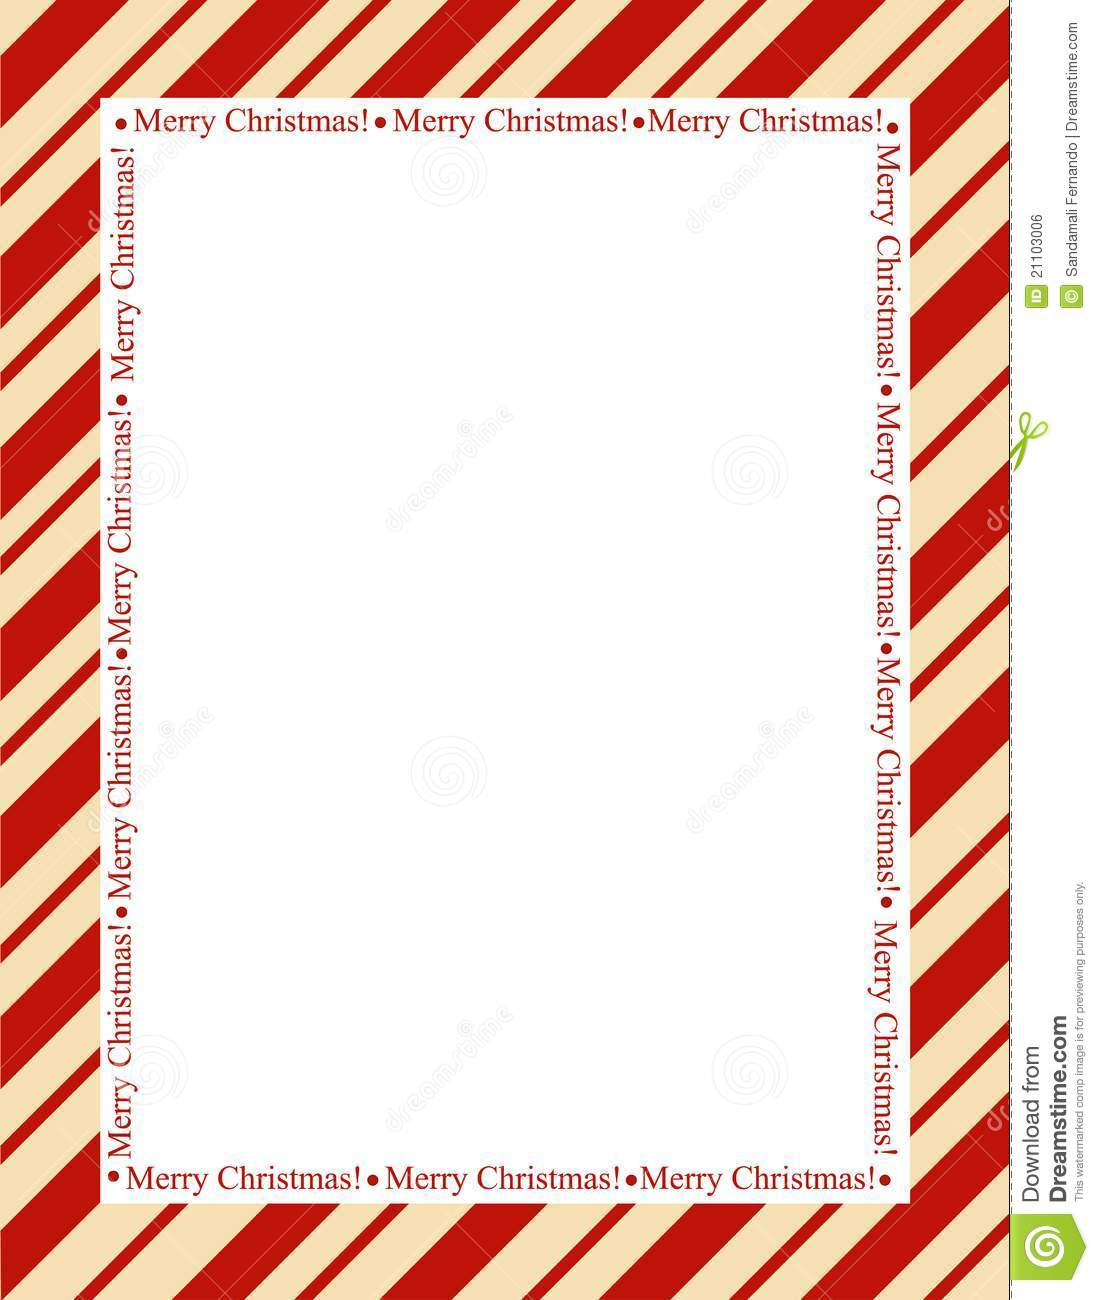 ... red stripes with merry christmas letters. christmas candy cane border